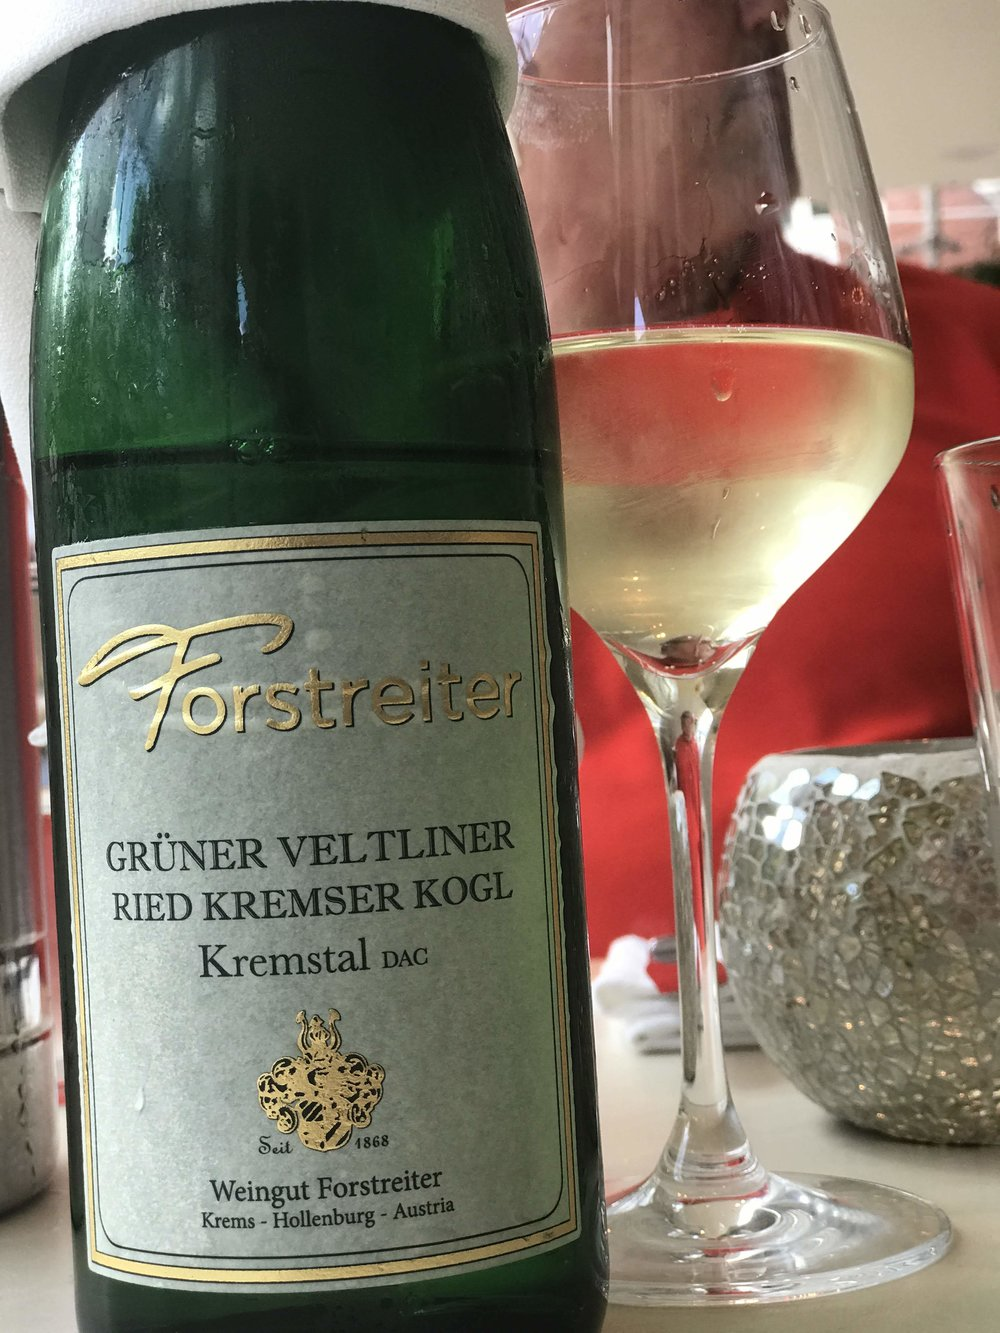 I took him to Tavern on the Green in Central Park for lunch.  The star of the show, other than the crème brulee, was this lovely Austrian Grüner Veltliner.